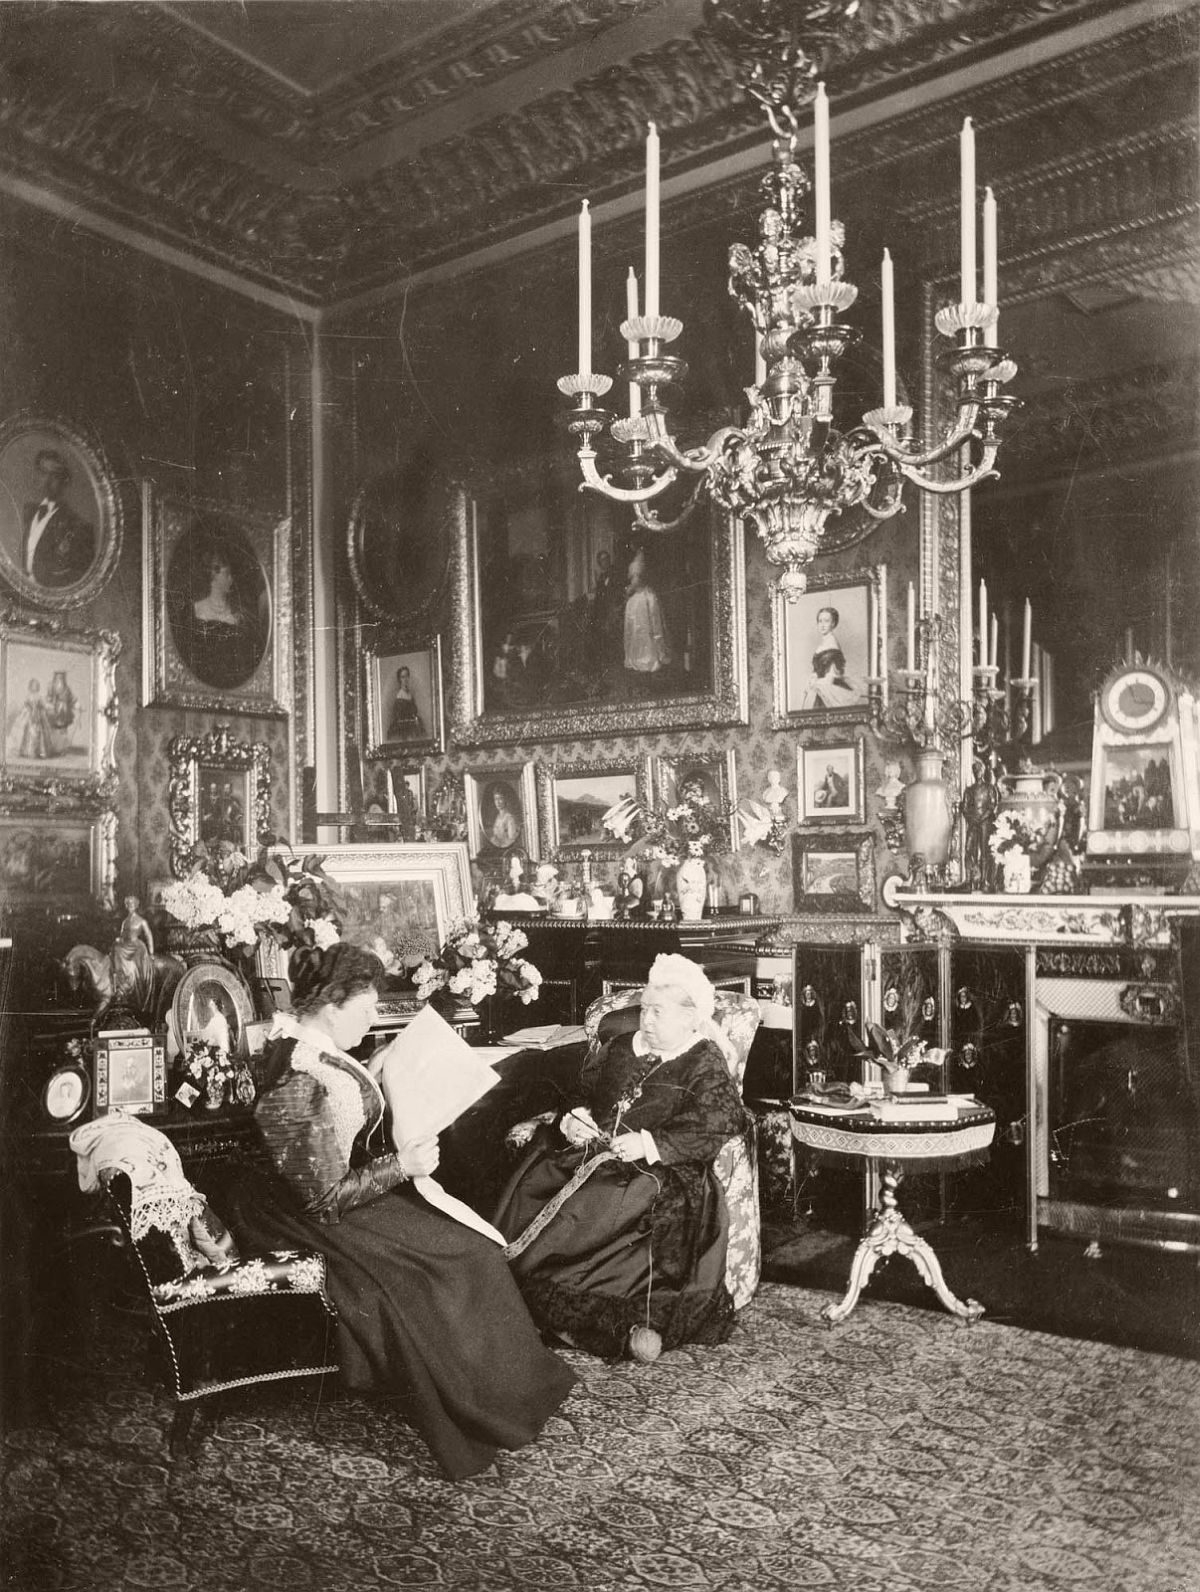 Mary Steen: Queen Victoria and Princess Beatrice, Windsor Castle (1895)